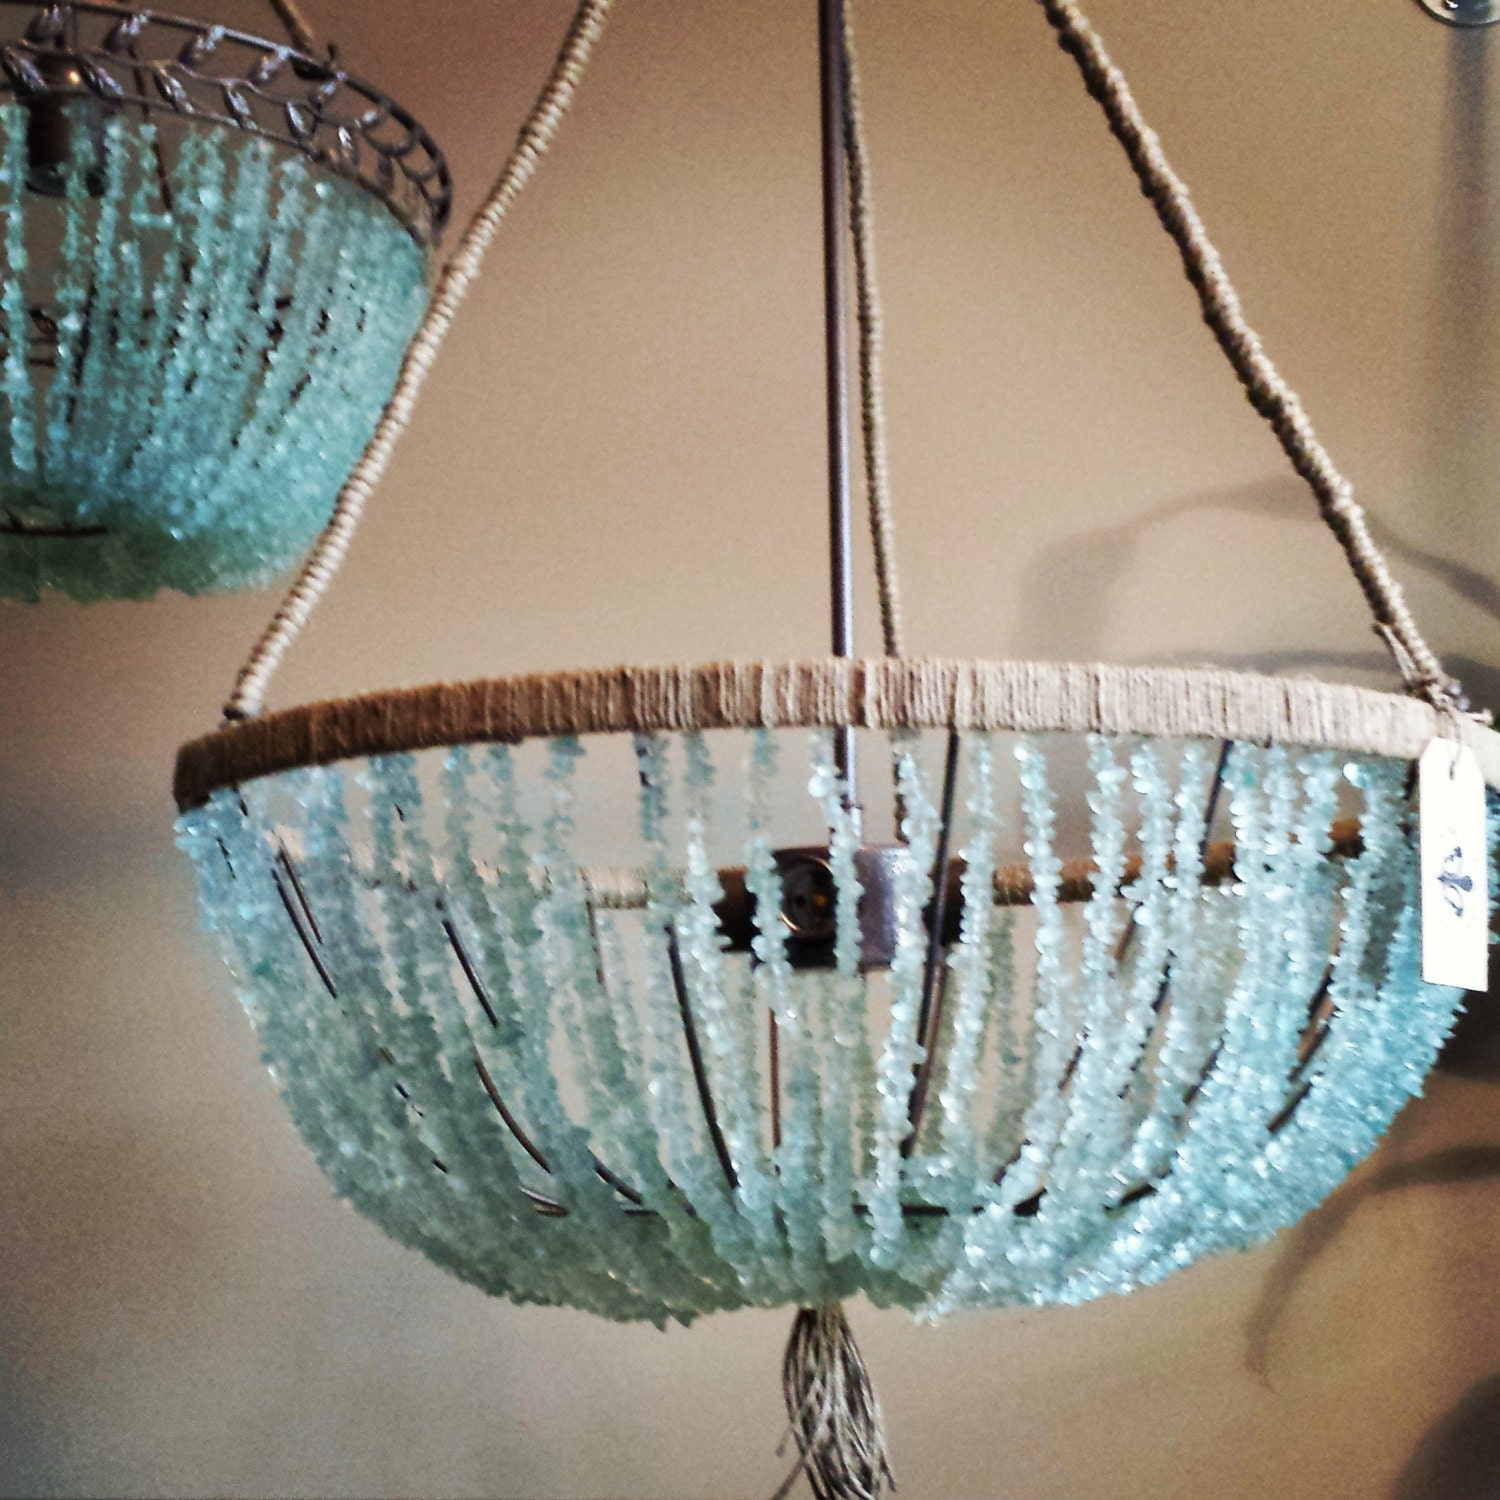 20 open sea glass chandelier by aucourantinteriors on etsy - Chandelier glass beads ...